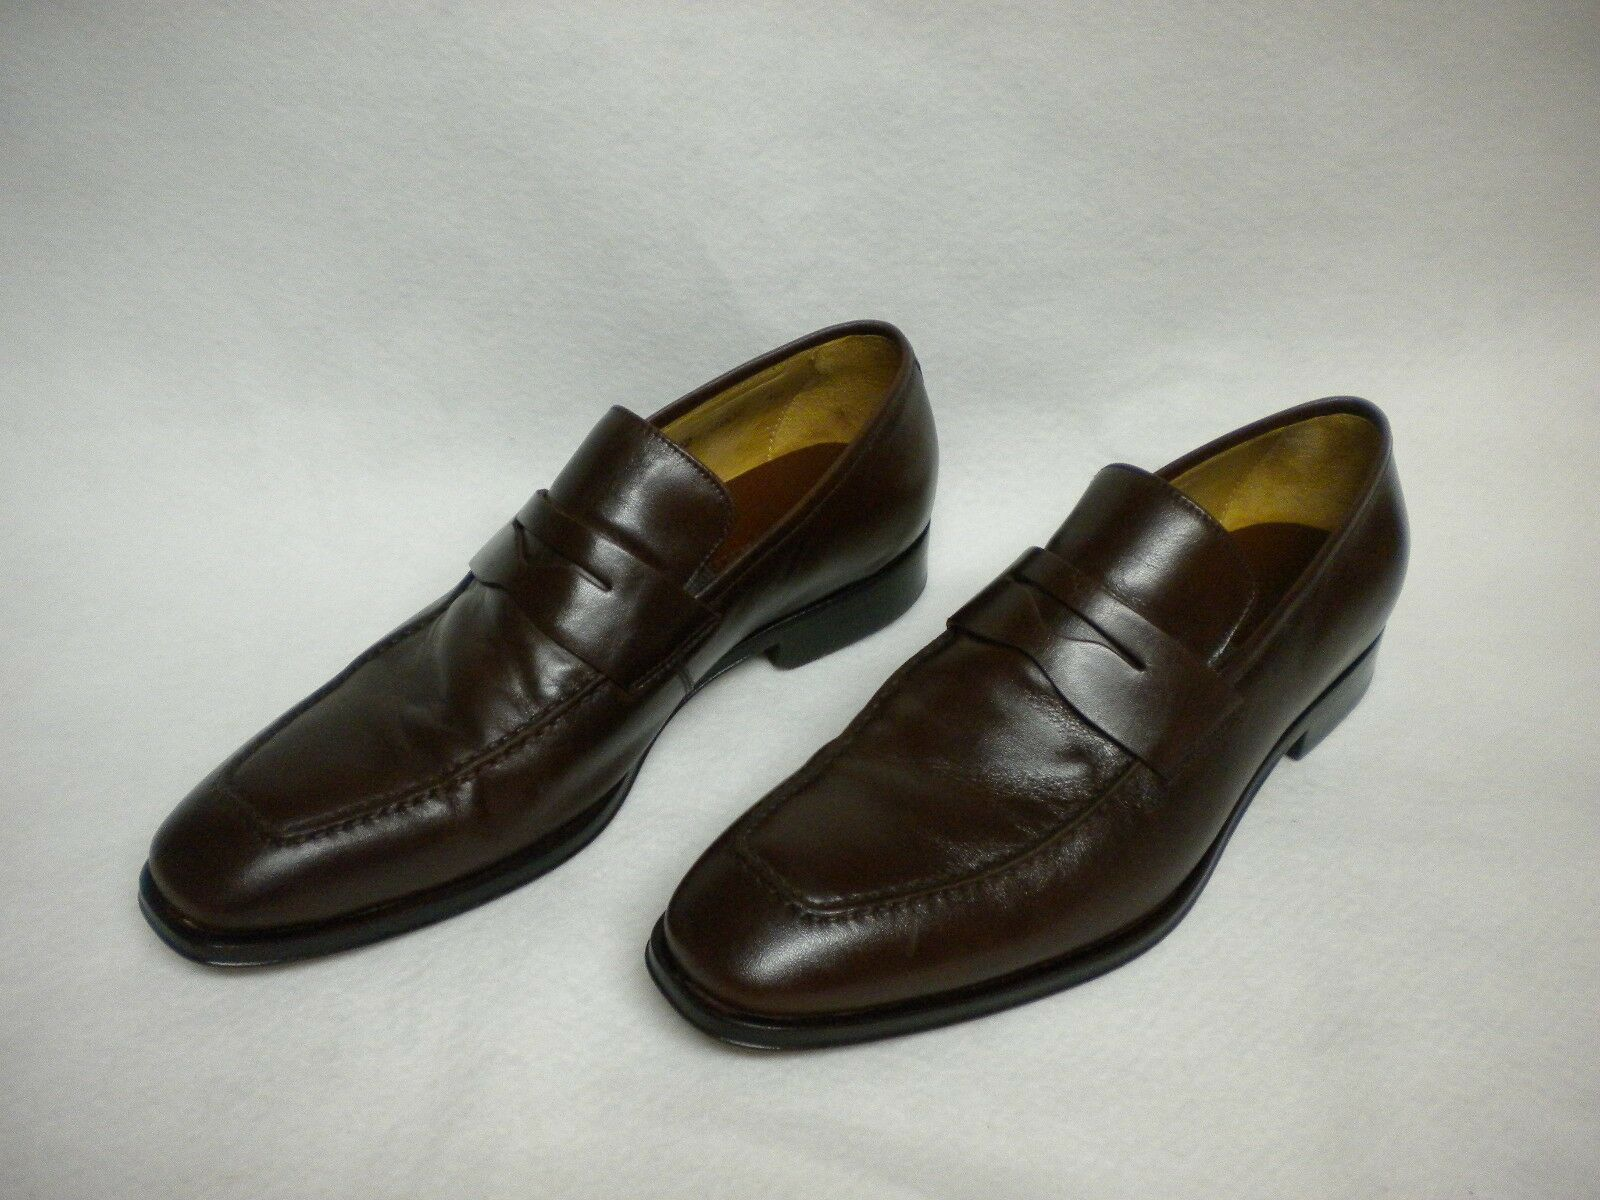 69e9cb67f97c5 after-sale protection,cheap in high quality-Dress Shoes - www ...